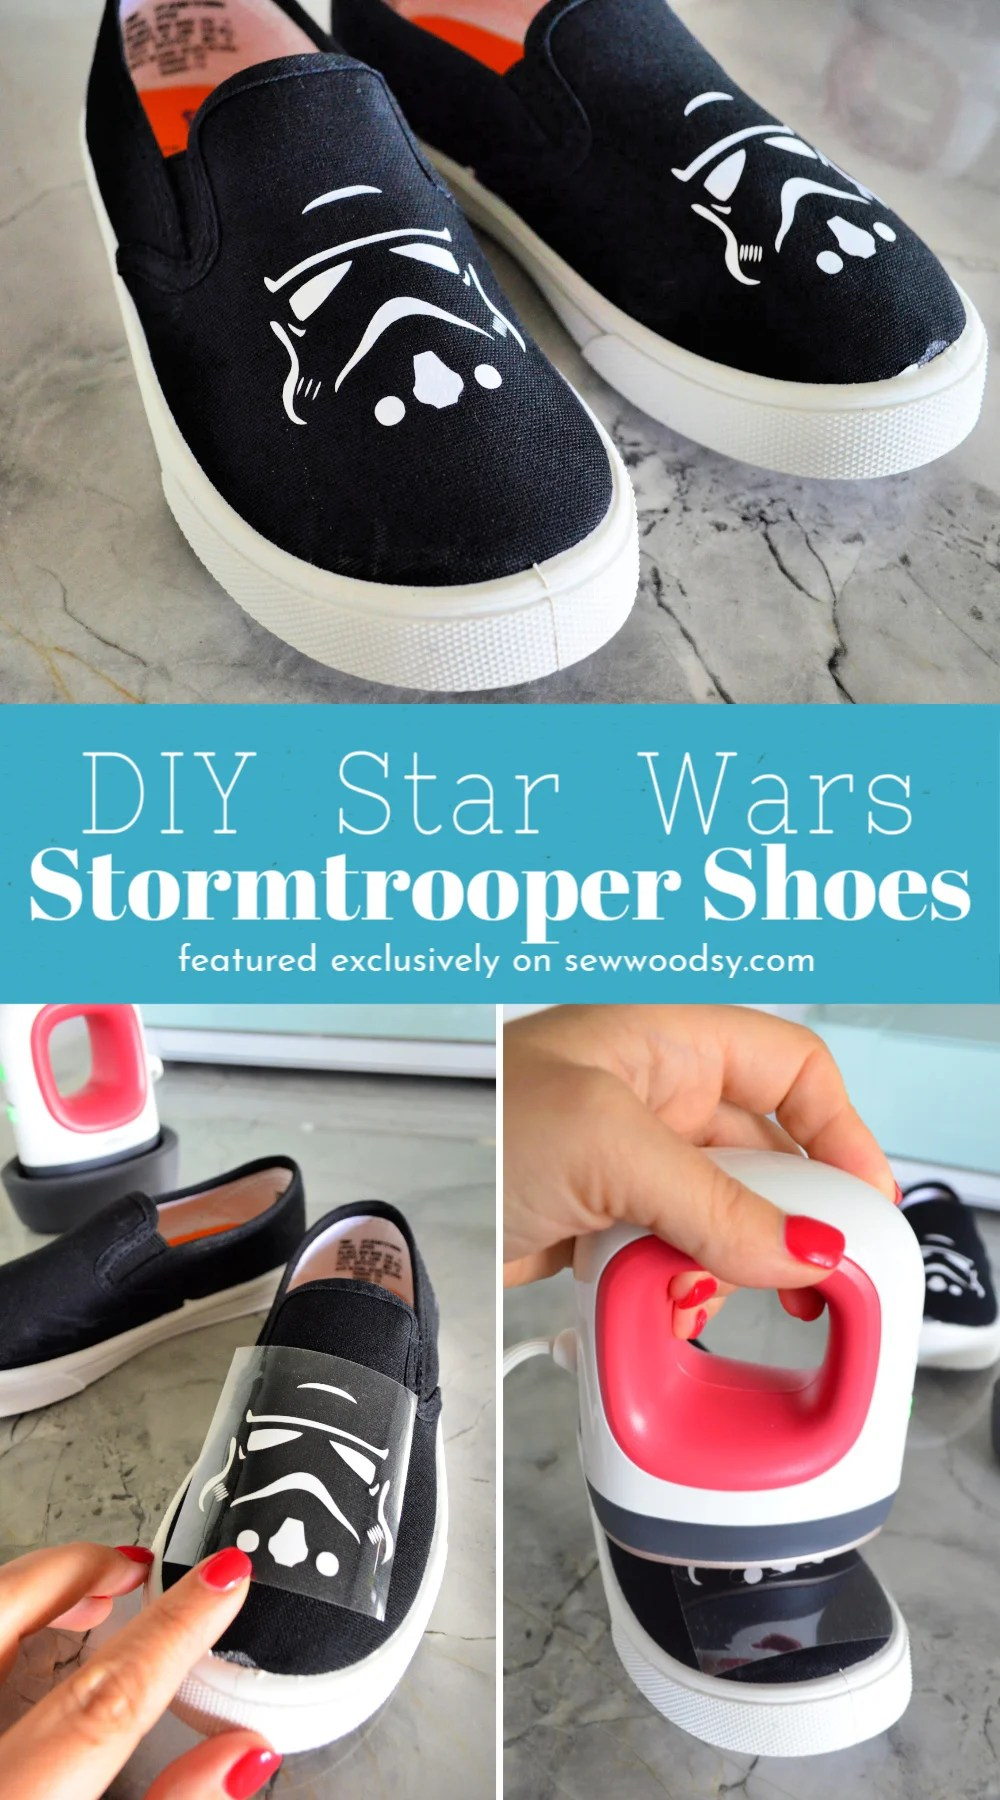 DIY Star Wars Stormtrooper Shoes collage with text